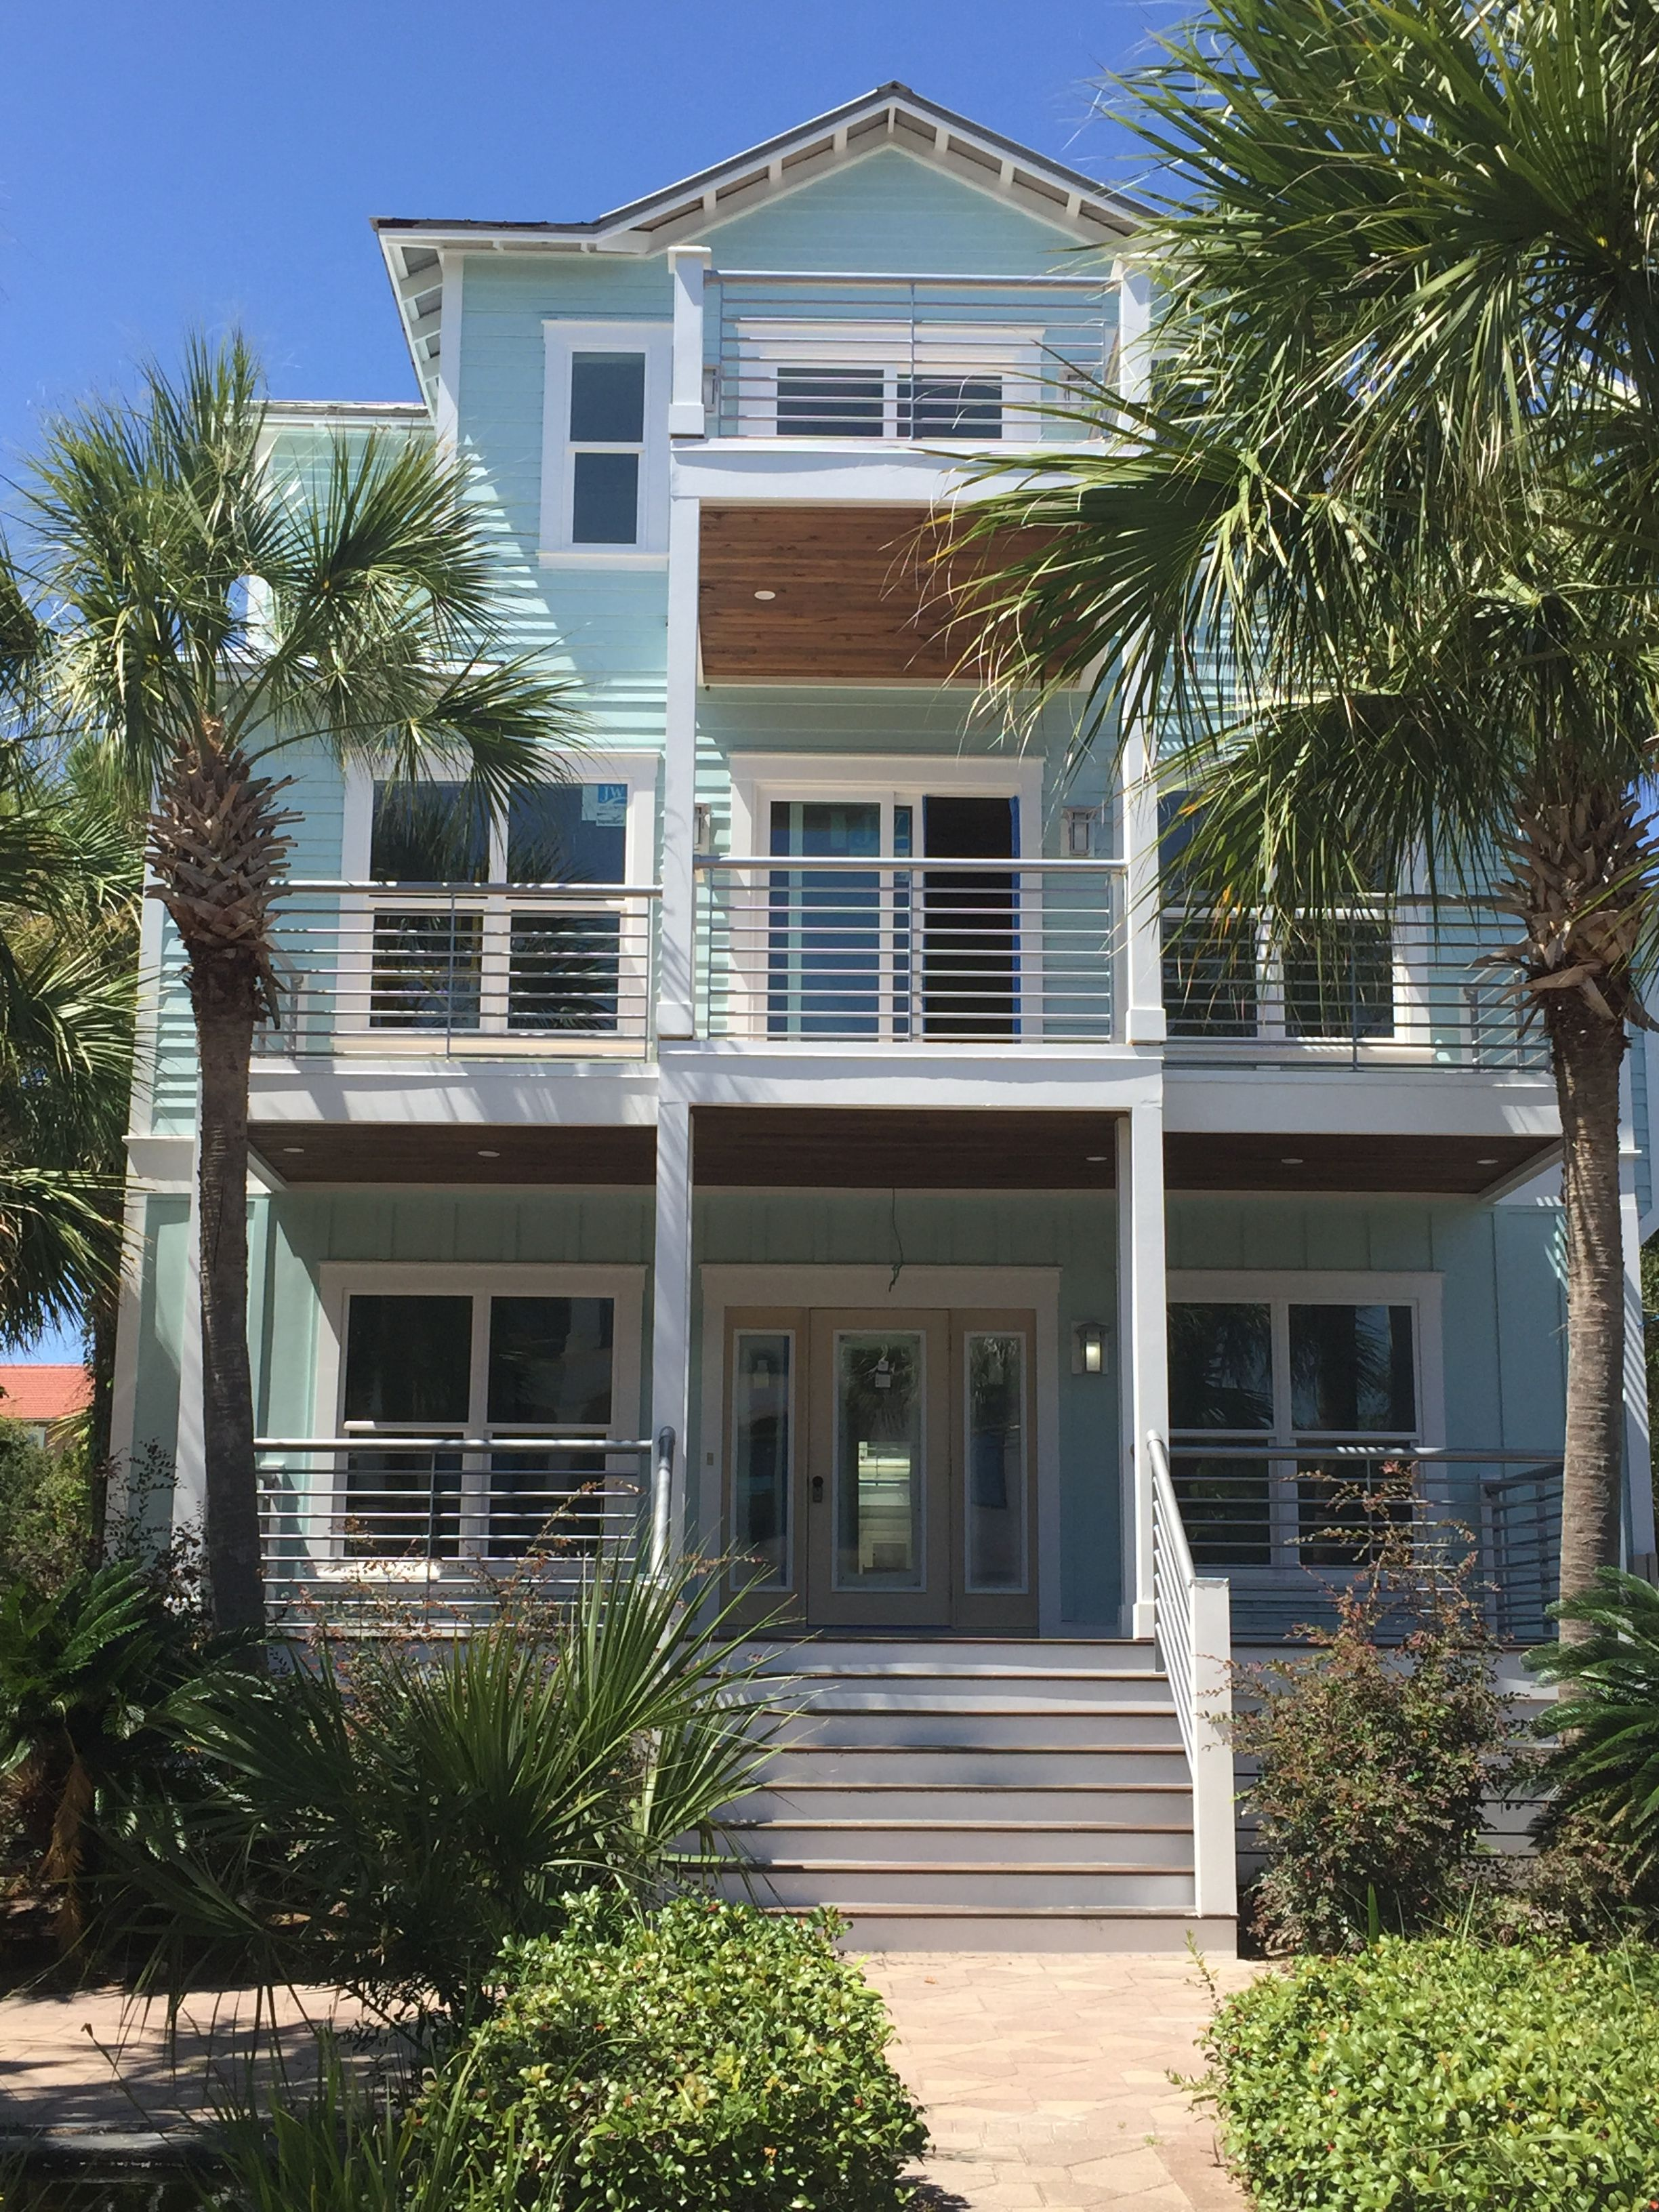 Beautiful Exterior House Colors Design: Beautiful Rental Home In Destin, FL. The Color Is Sherwin